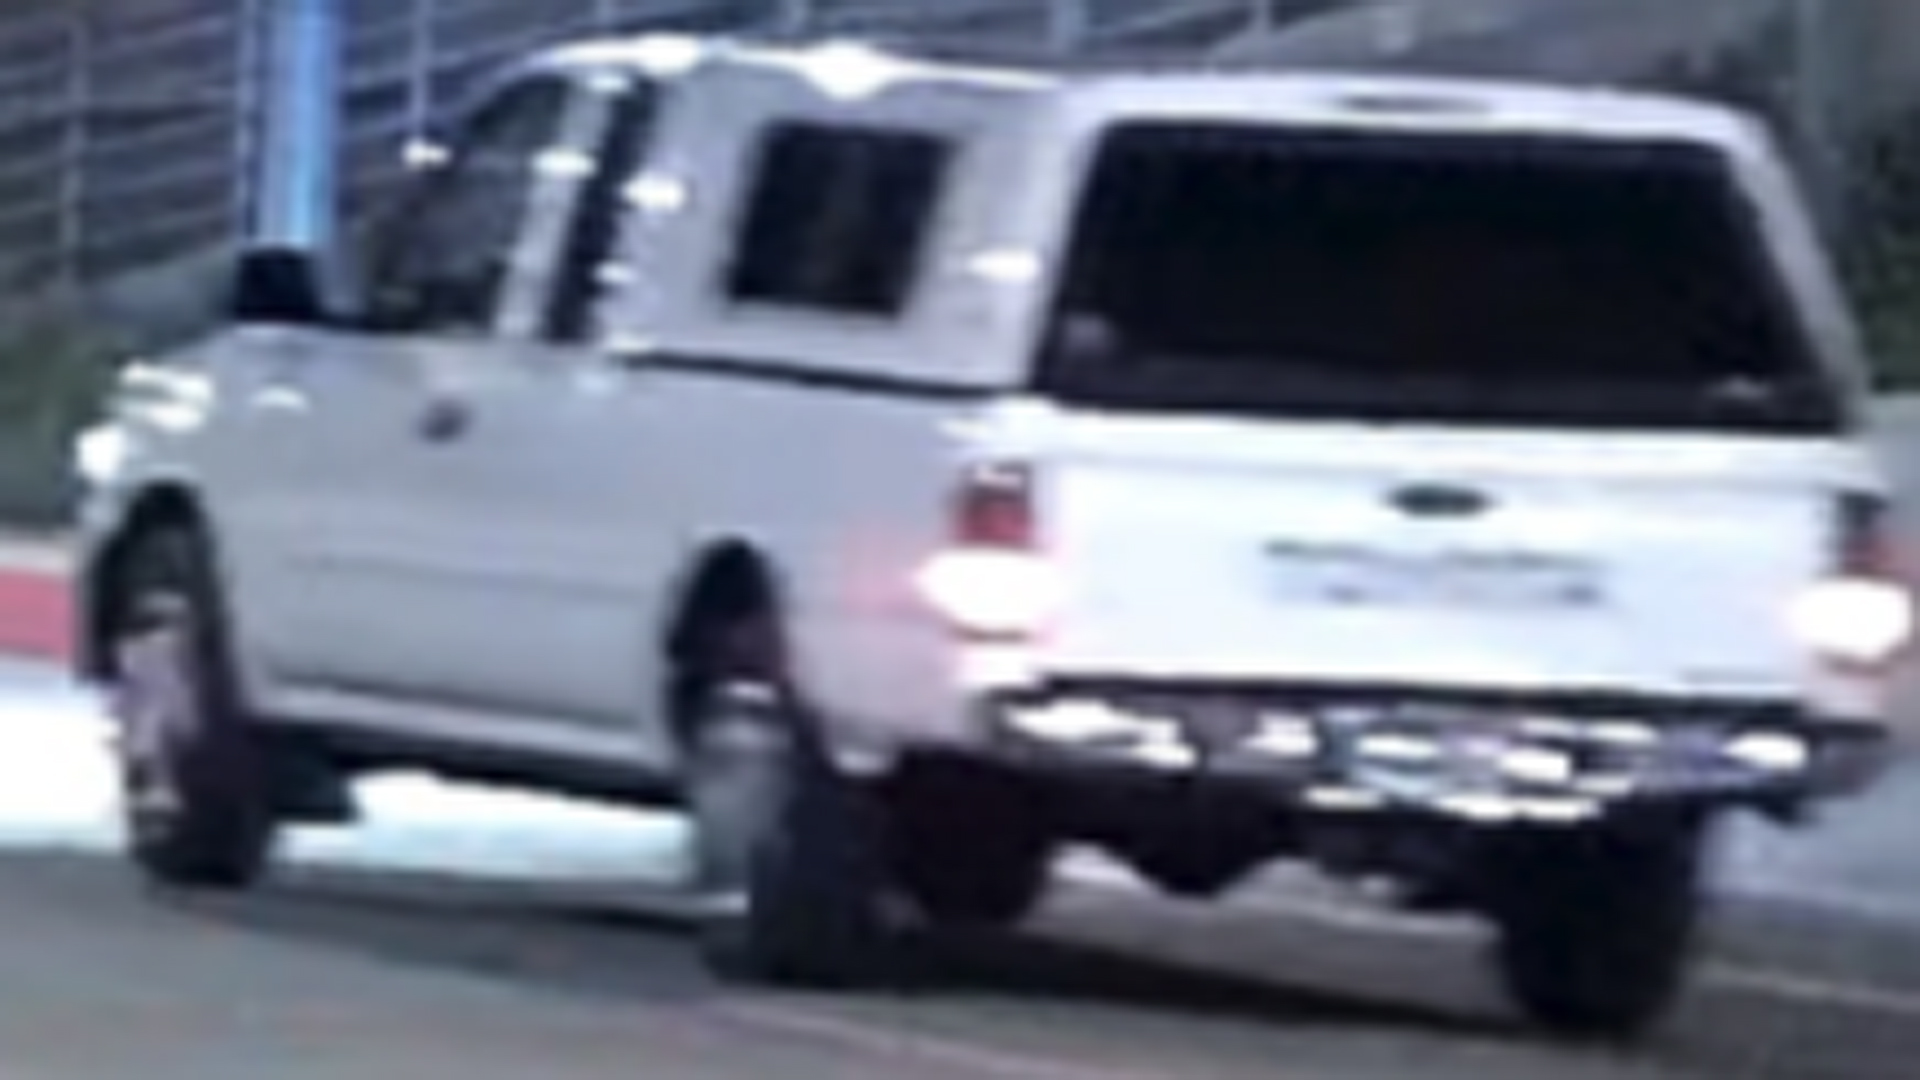 A truck involved in a road-rage shooting in Glendale is shown in a photo provided by police on Sept. 24, 2020.